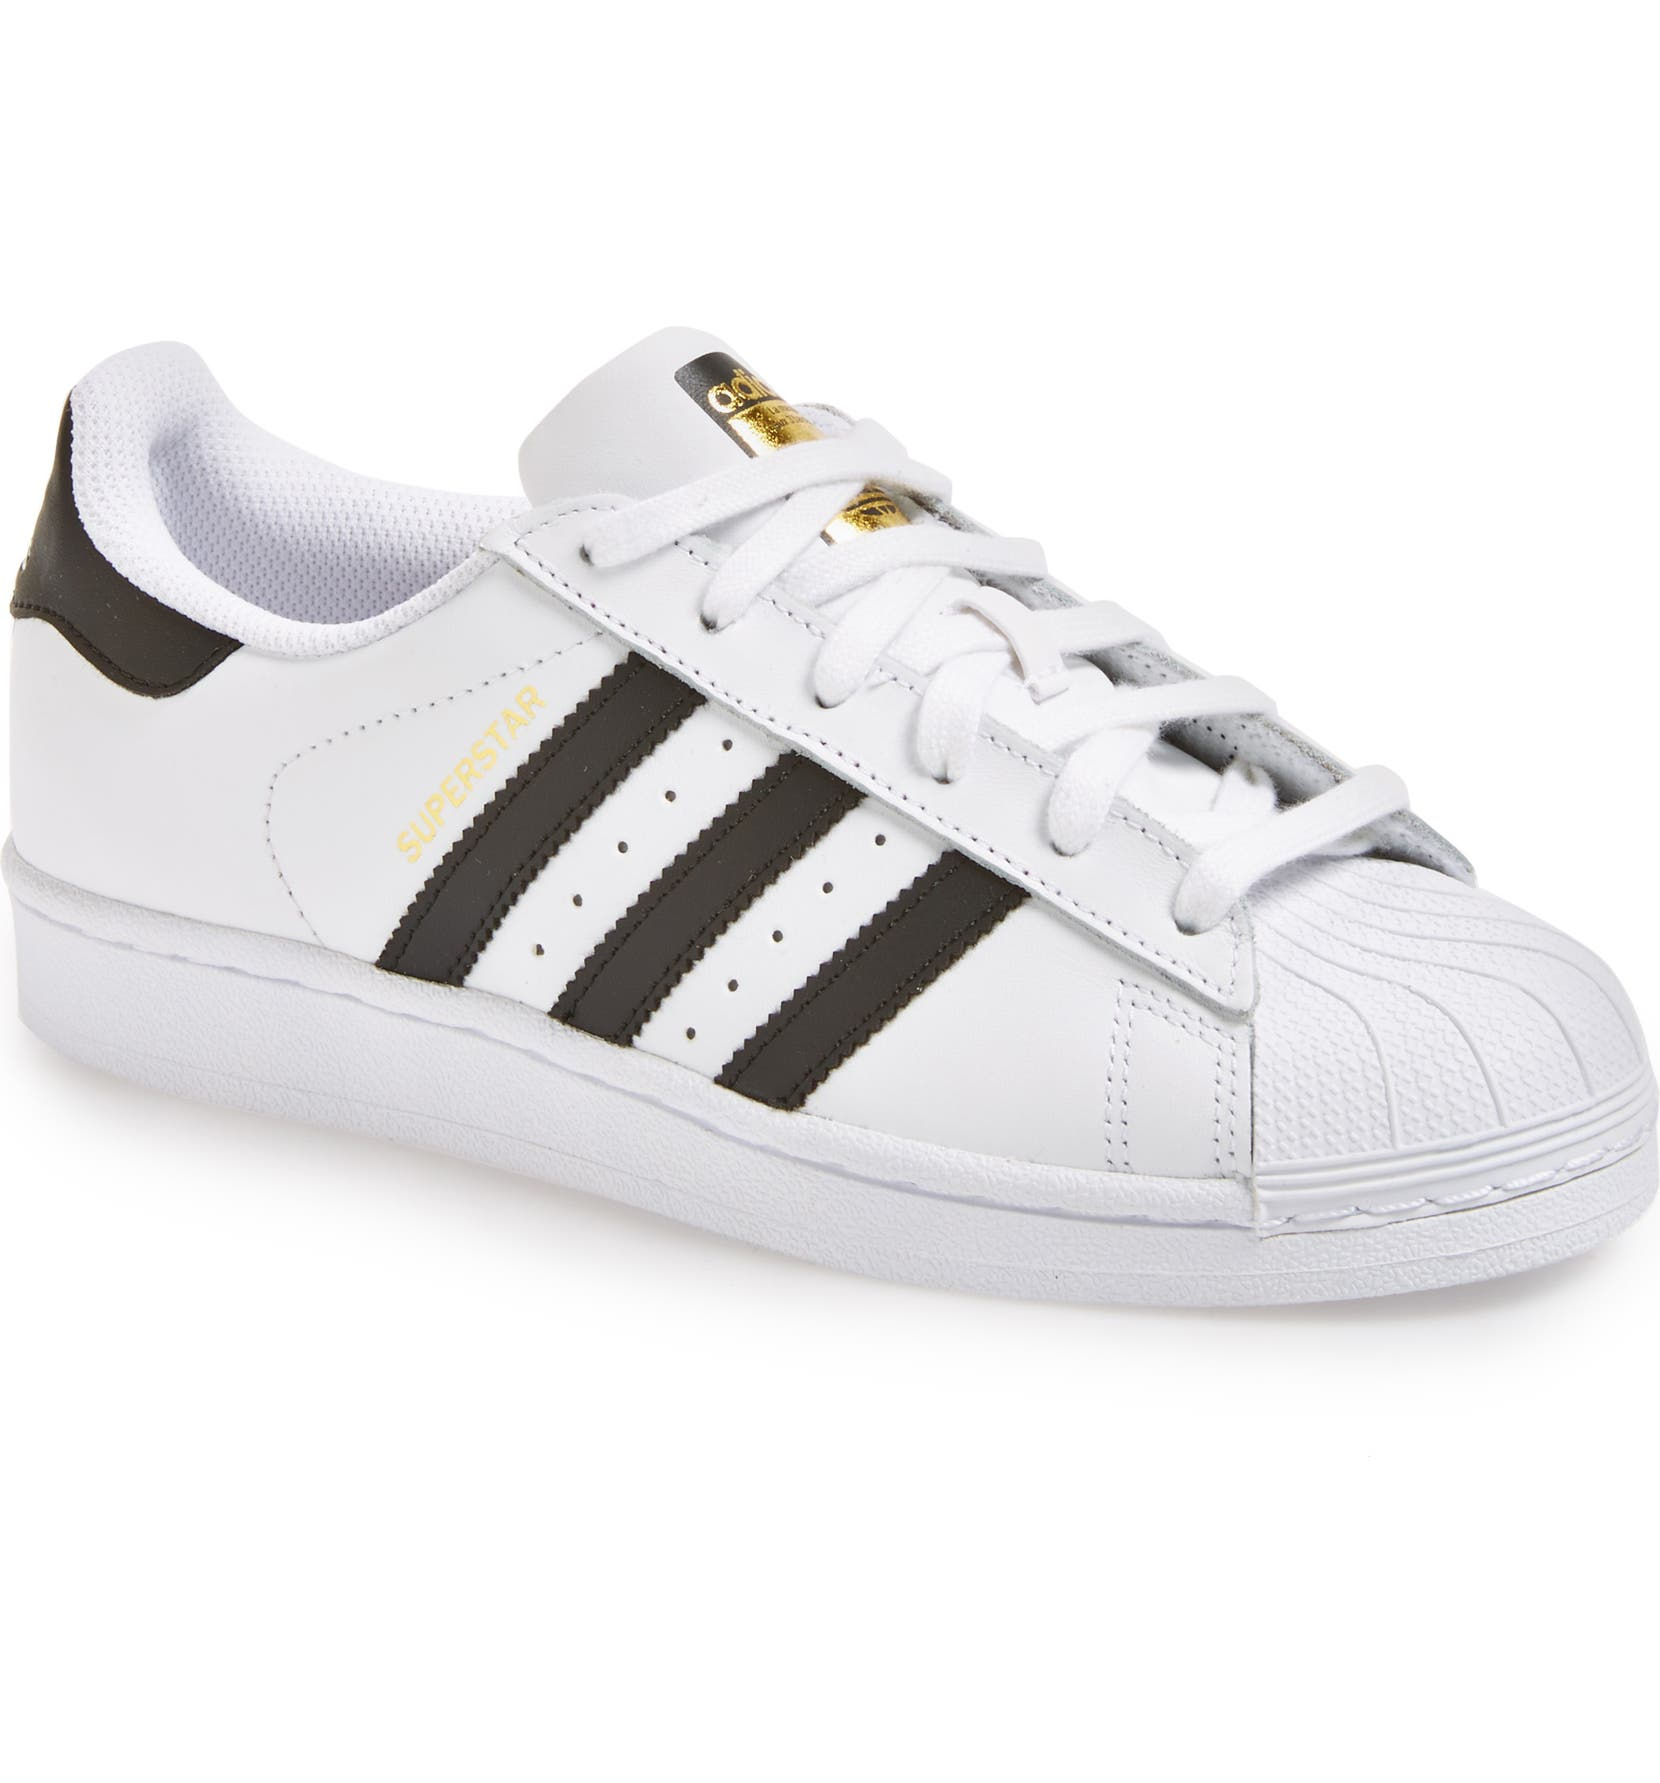 separation shoes 8e427 018b9 adidas Superstar Sneaker   Nordstrom